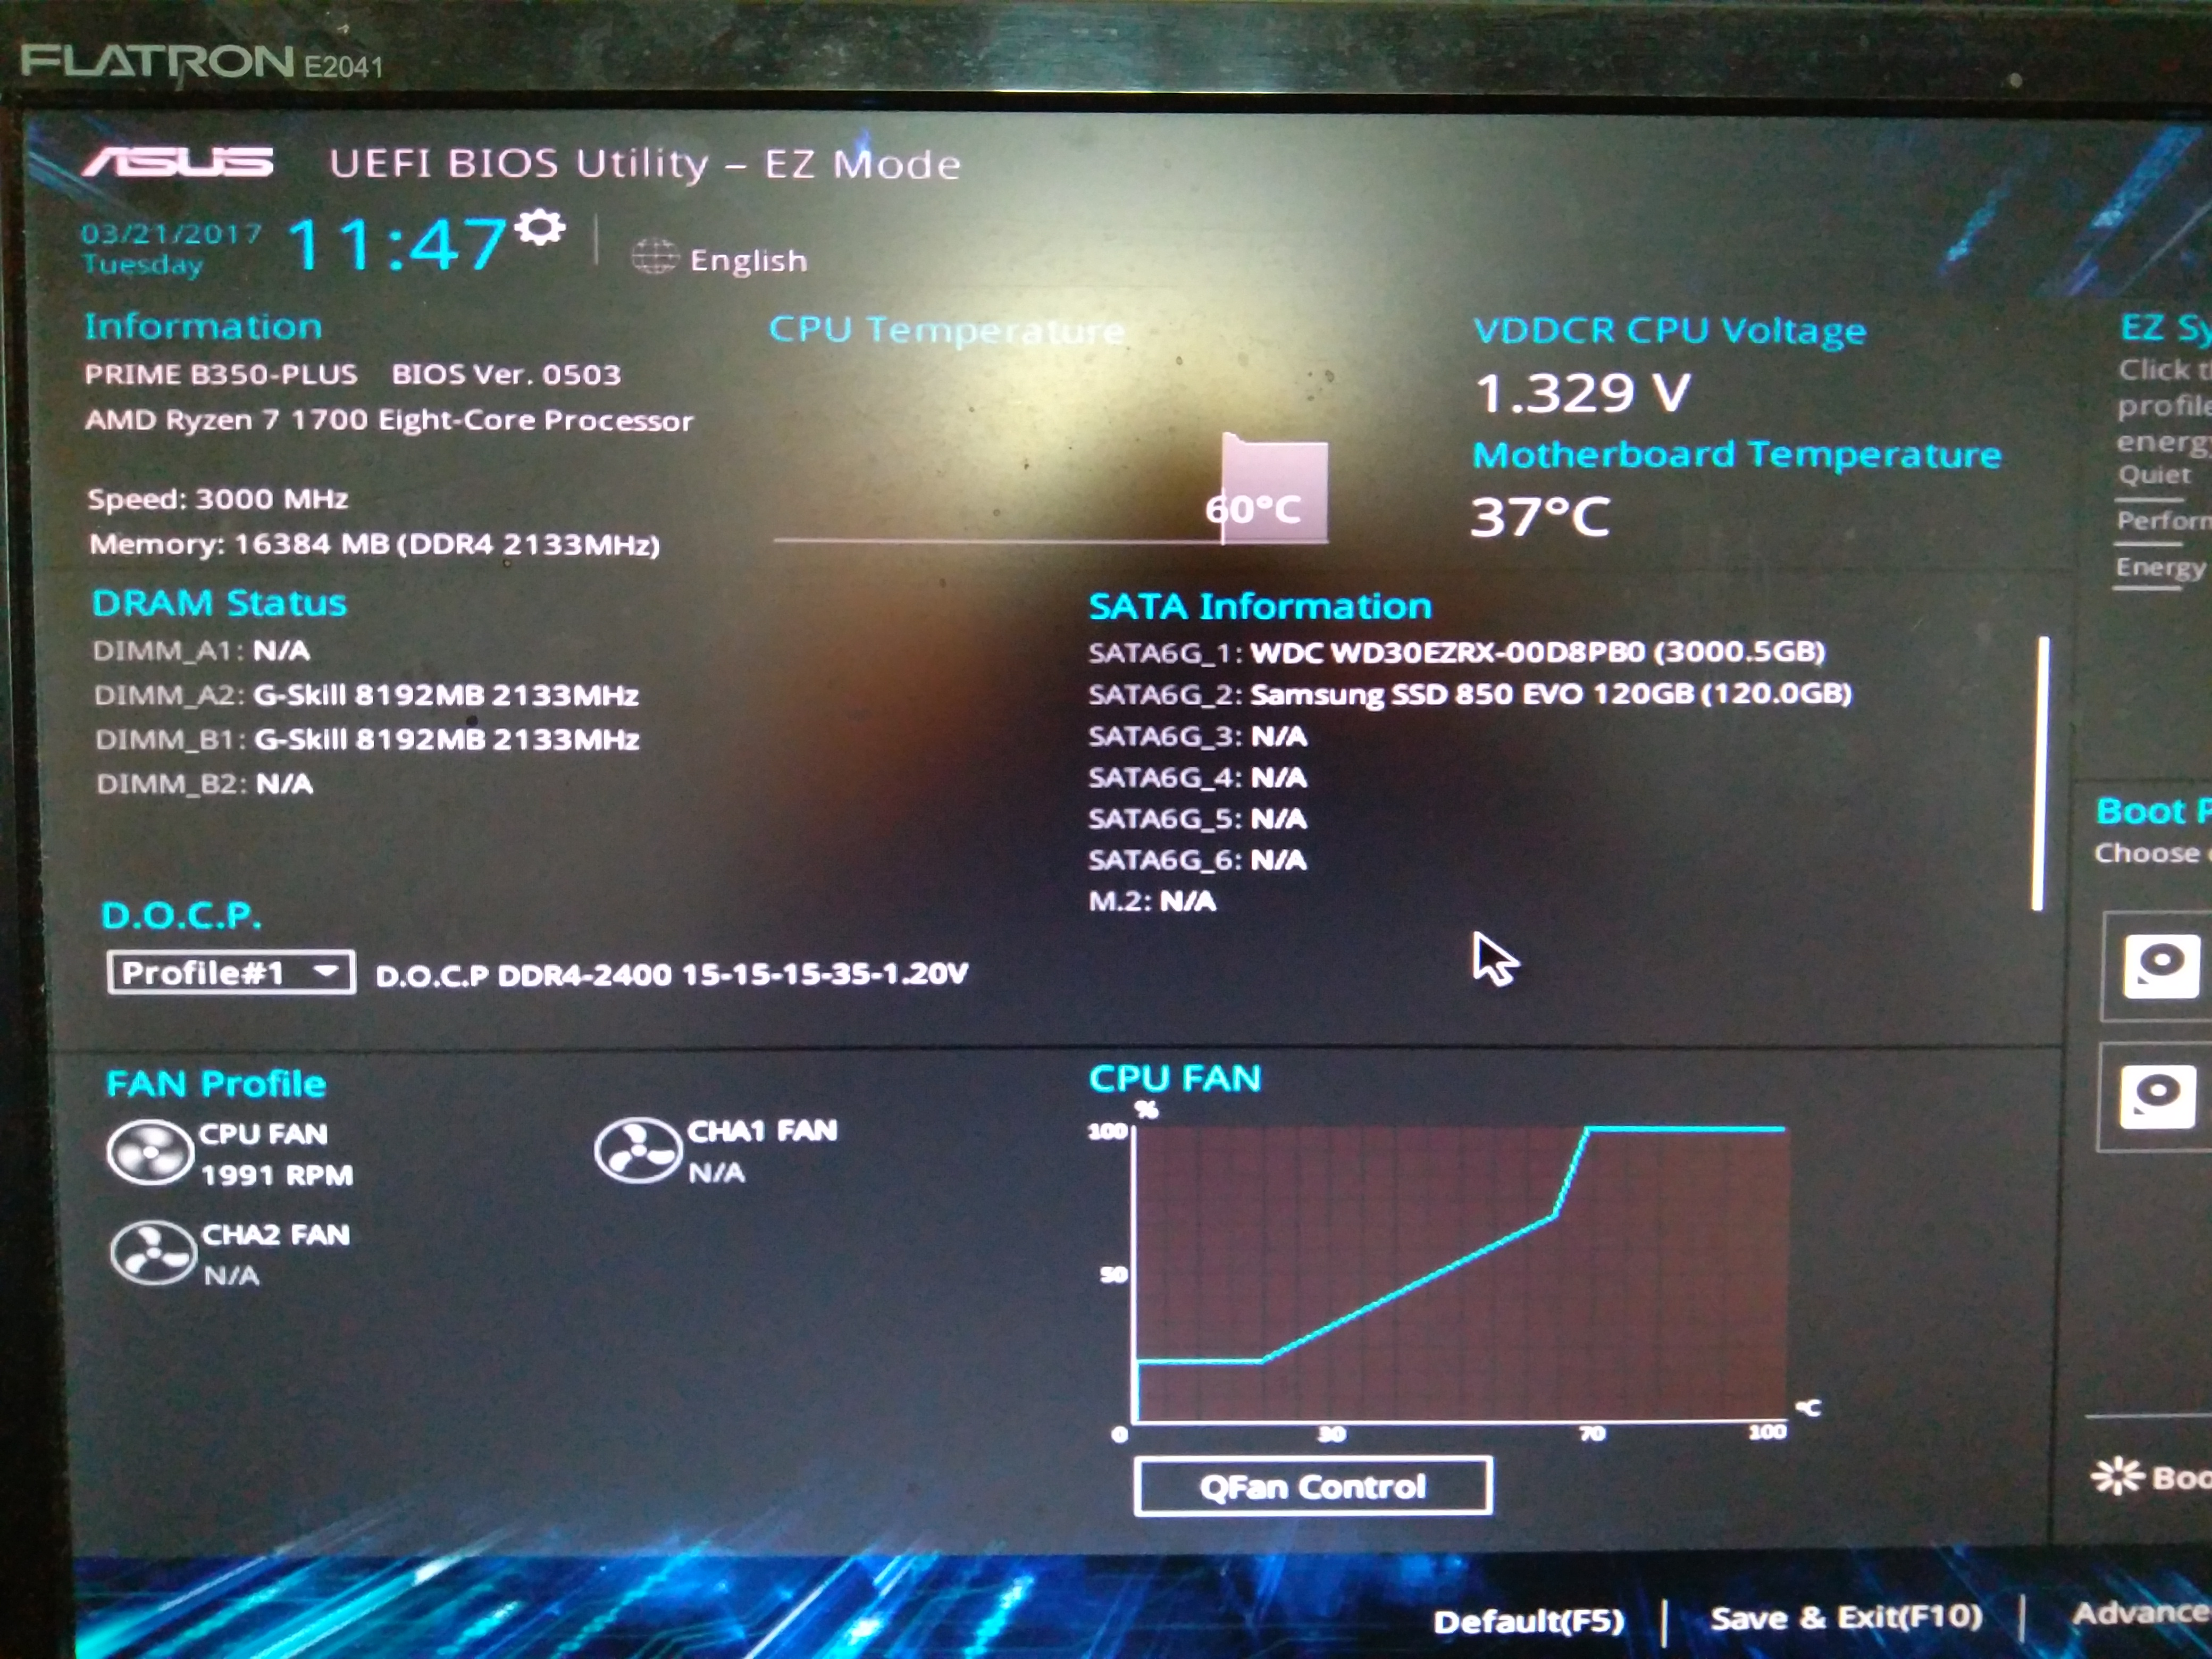 ryzen r7 1700 ram and cpu voltage issues - CPUs, Motherboards, and